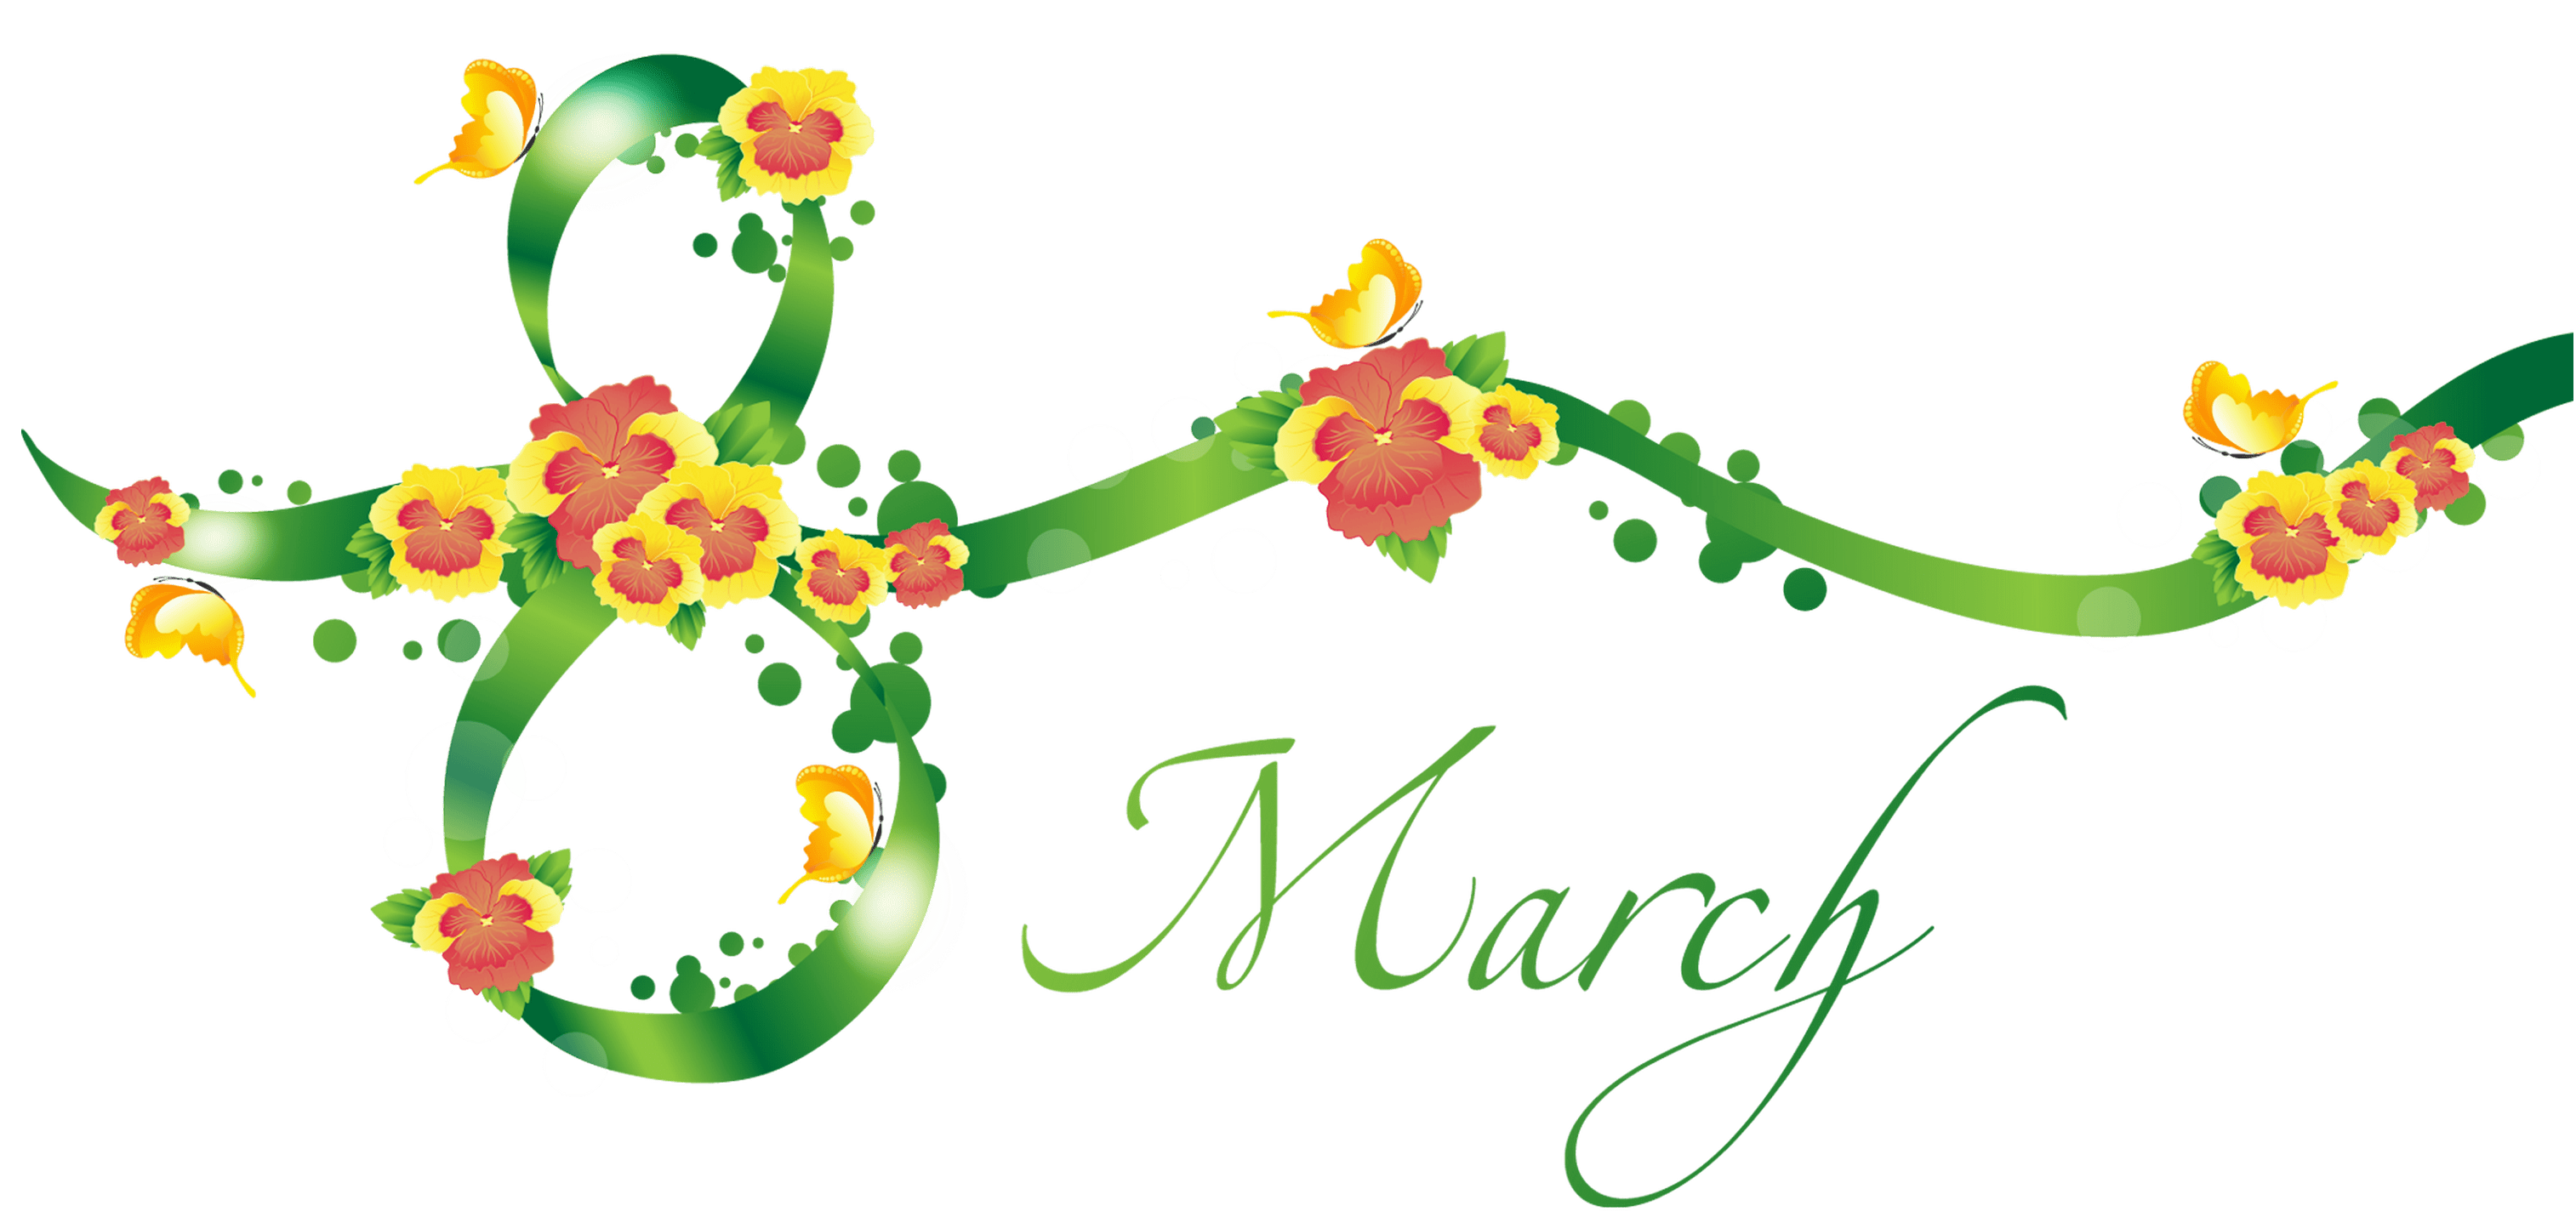 March clipart free graphic freeuse download Free march clipart clipart images gallery for free download ... graphic freeuse download